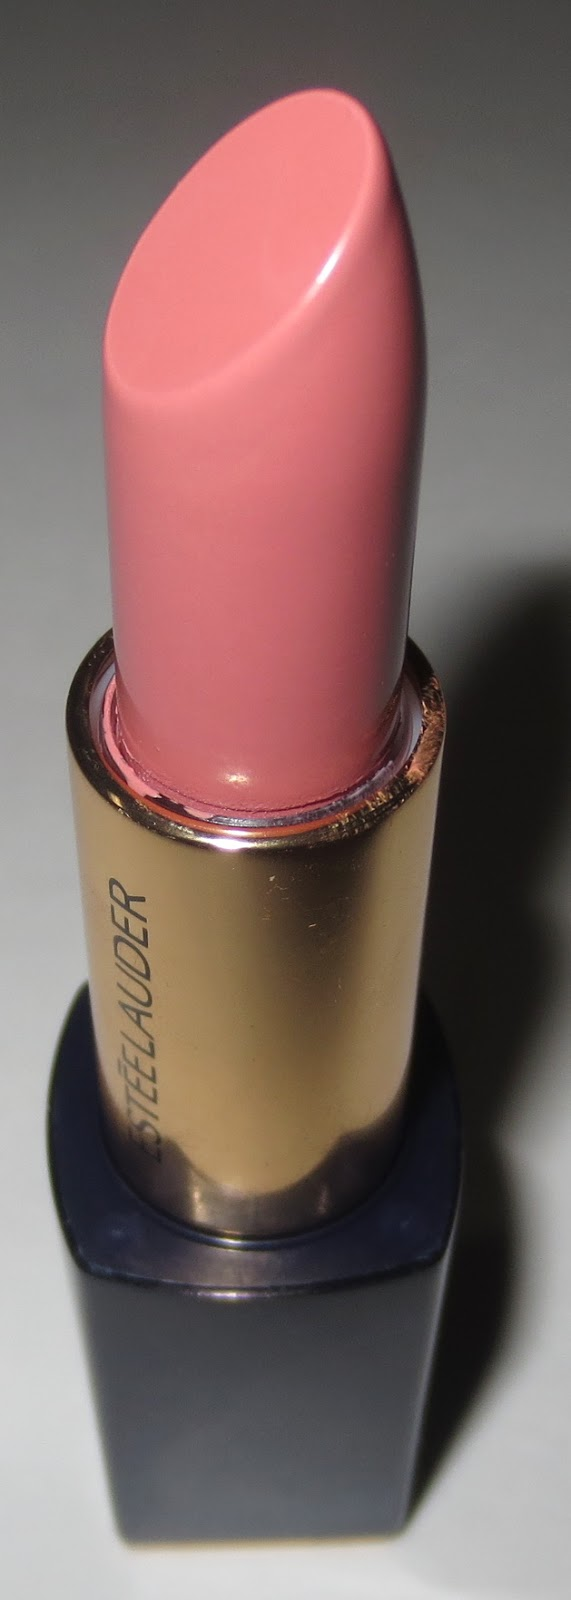 Estée Lauder Pure Color Envy Sculpting Lipstick in Desirable